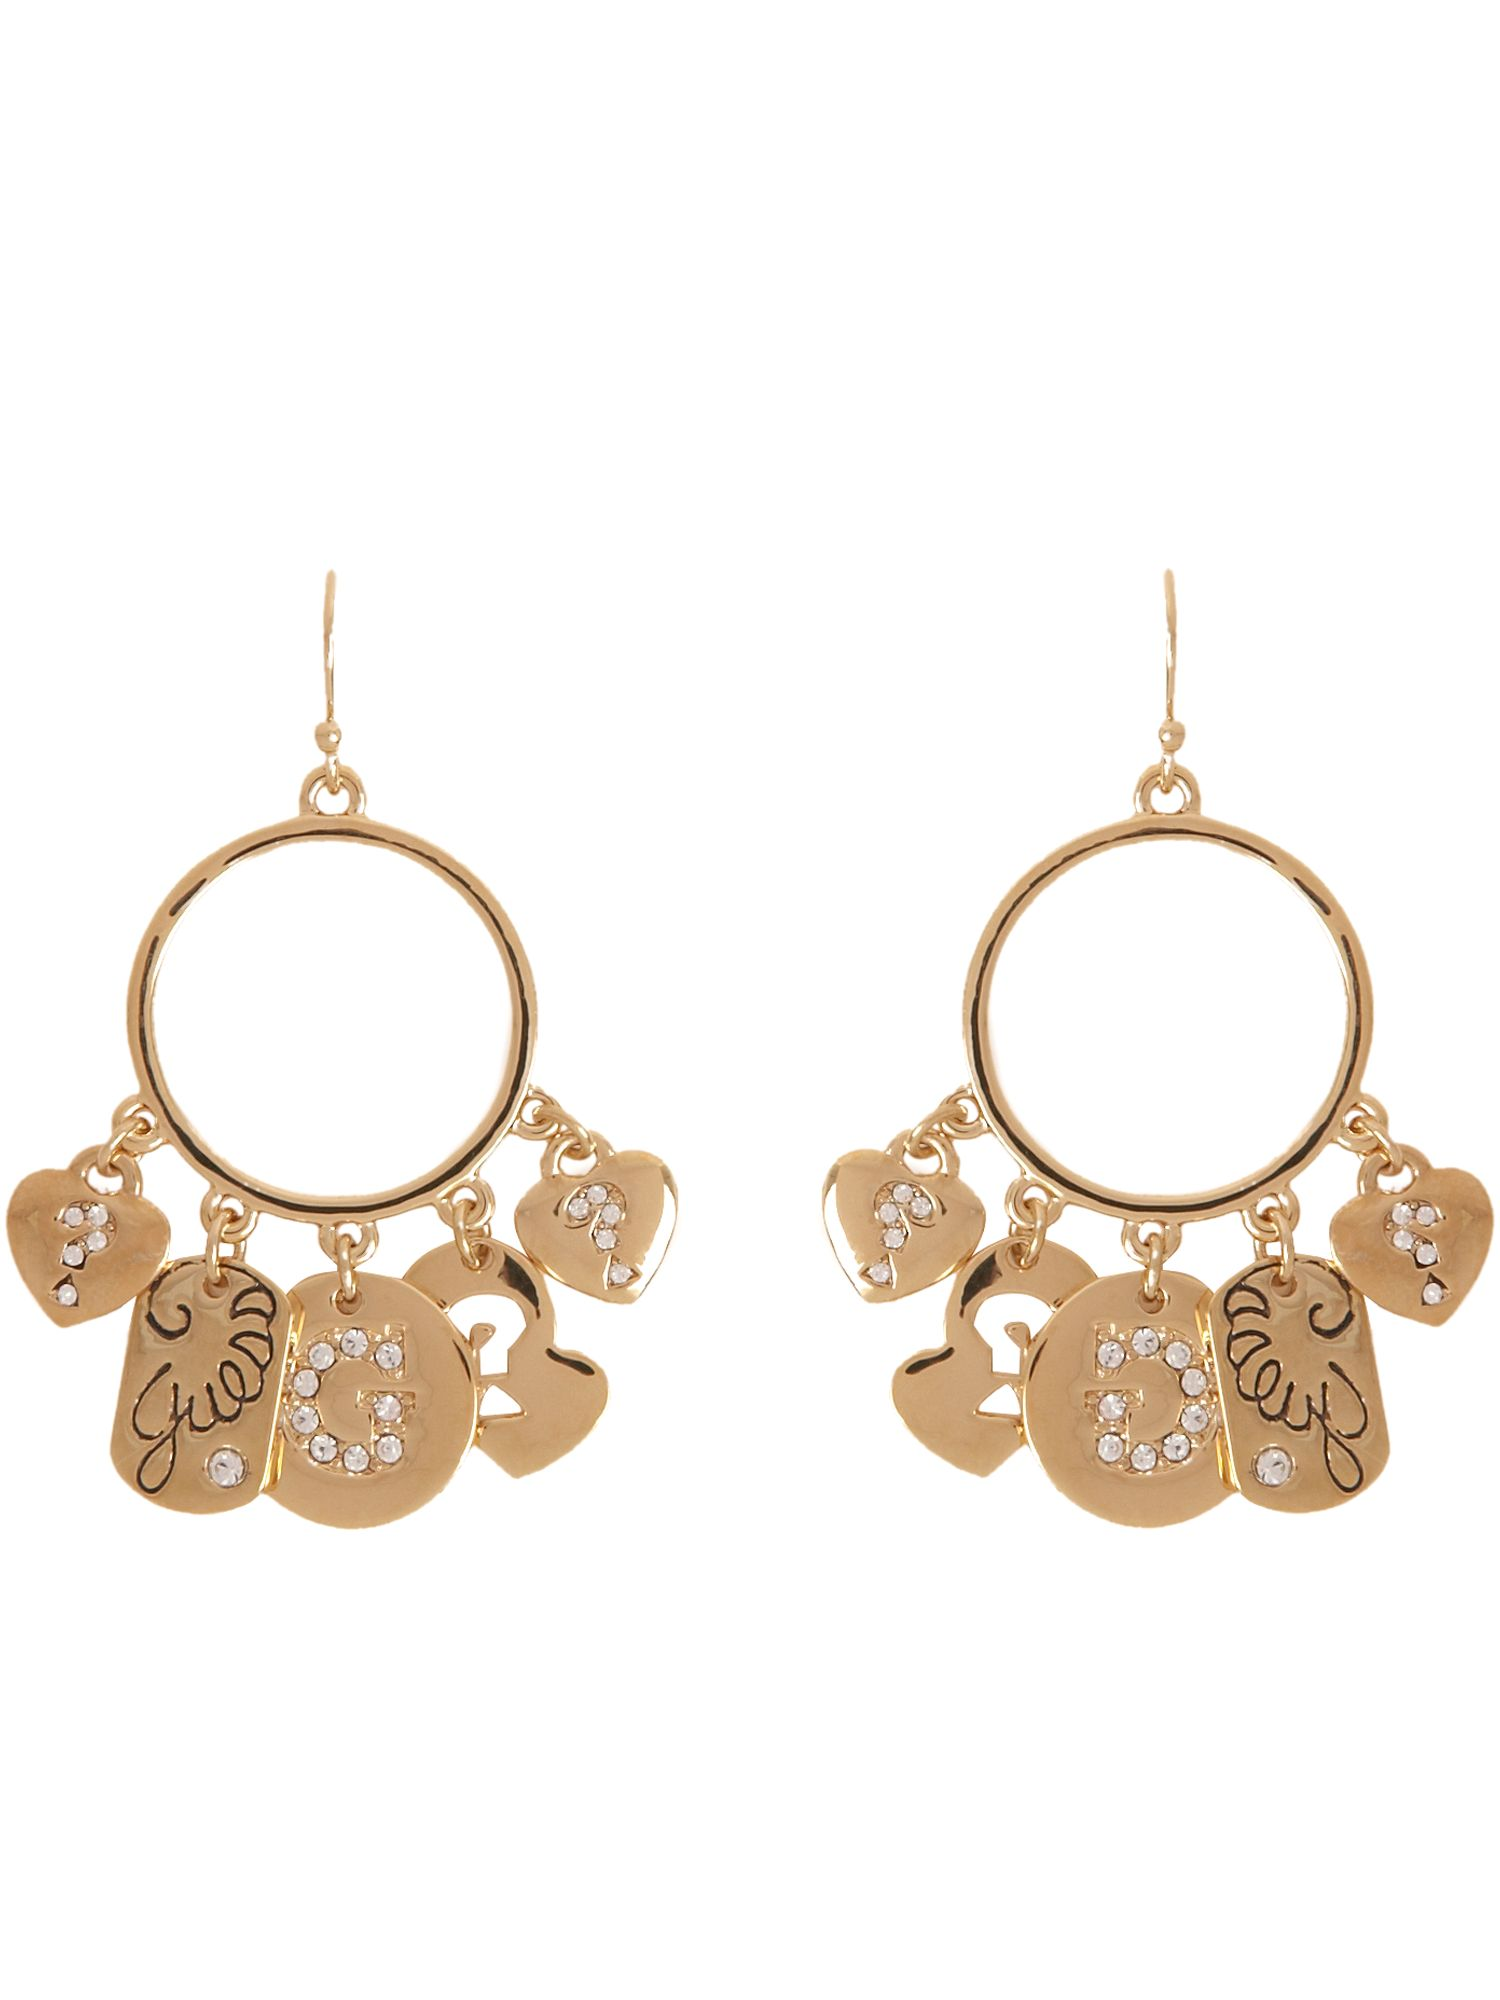 Guess Gypsy charm gold plated hoop earrings product image